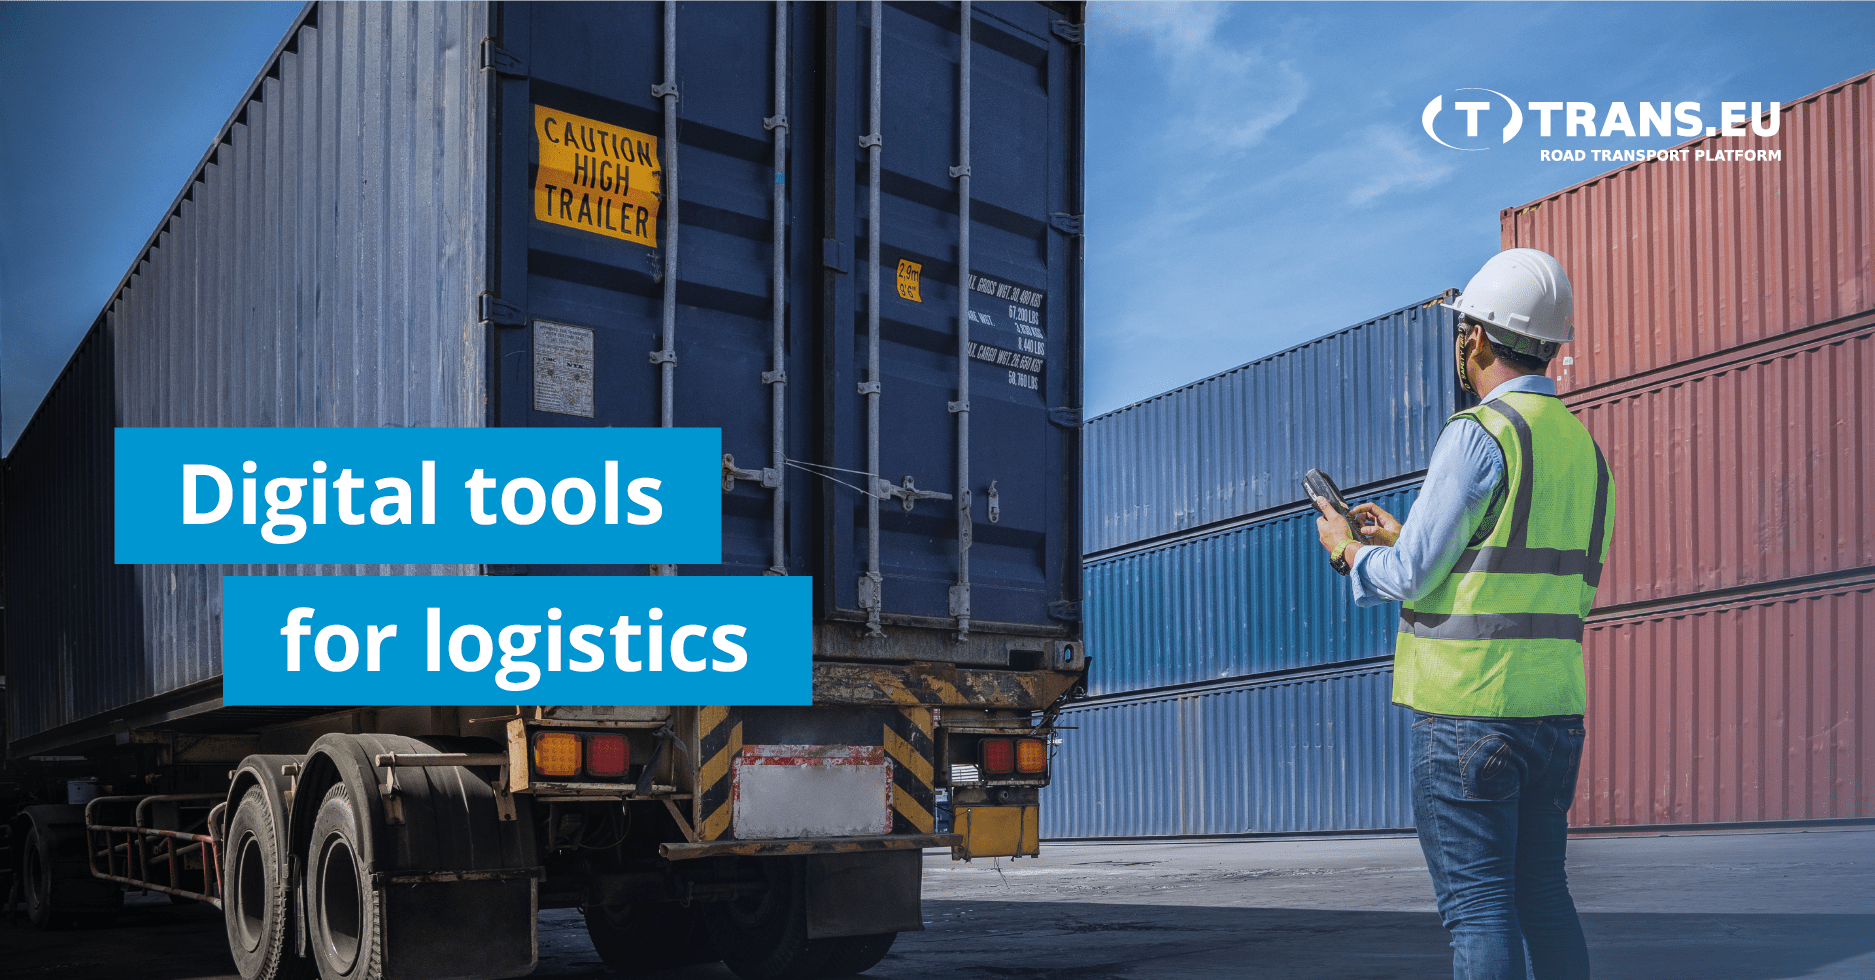 Handy tools to automate the logistician's work